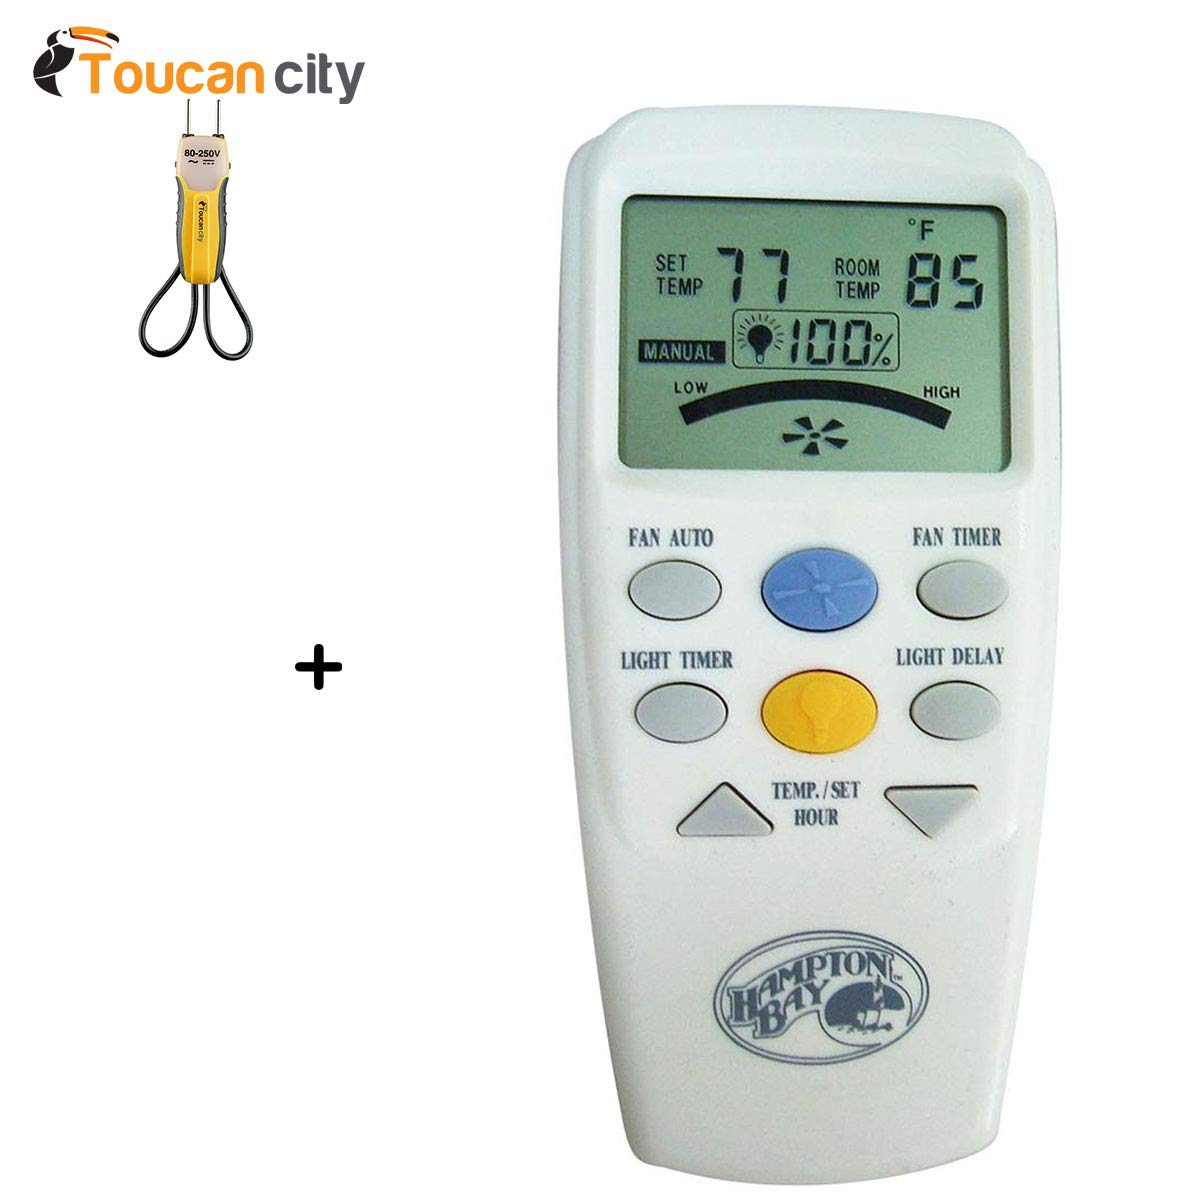 Toucan City Voltage Tester and Hampton Bay LCD Display Thermostatic Remote Control 60001